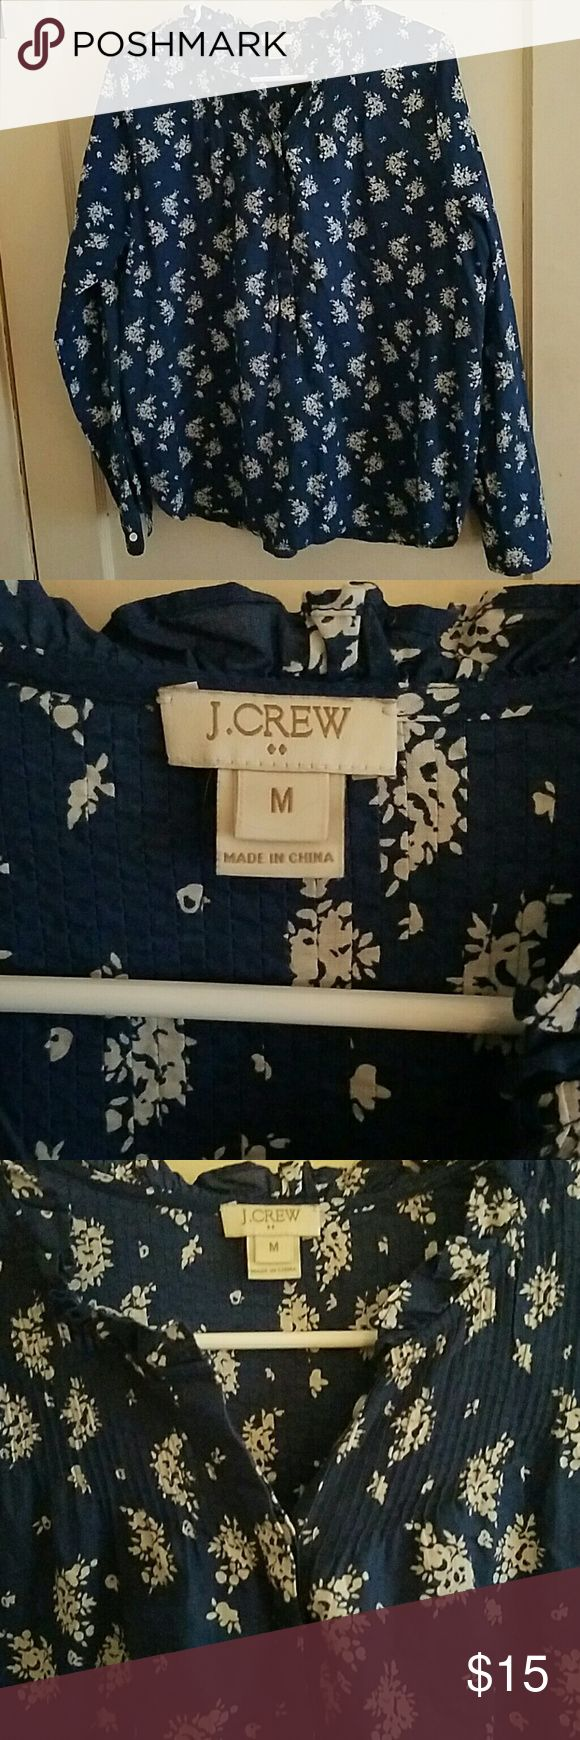 J. Crew floral blue shirt Adorable j. Crew floral blouse. Top and back is smocked. Has 4 buttons in front. Long cuffed sleeves with button. Dark blue with white flowers. Size medium. J. Crew Tops Blouses